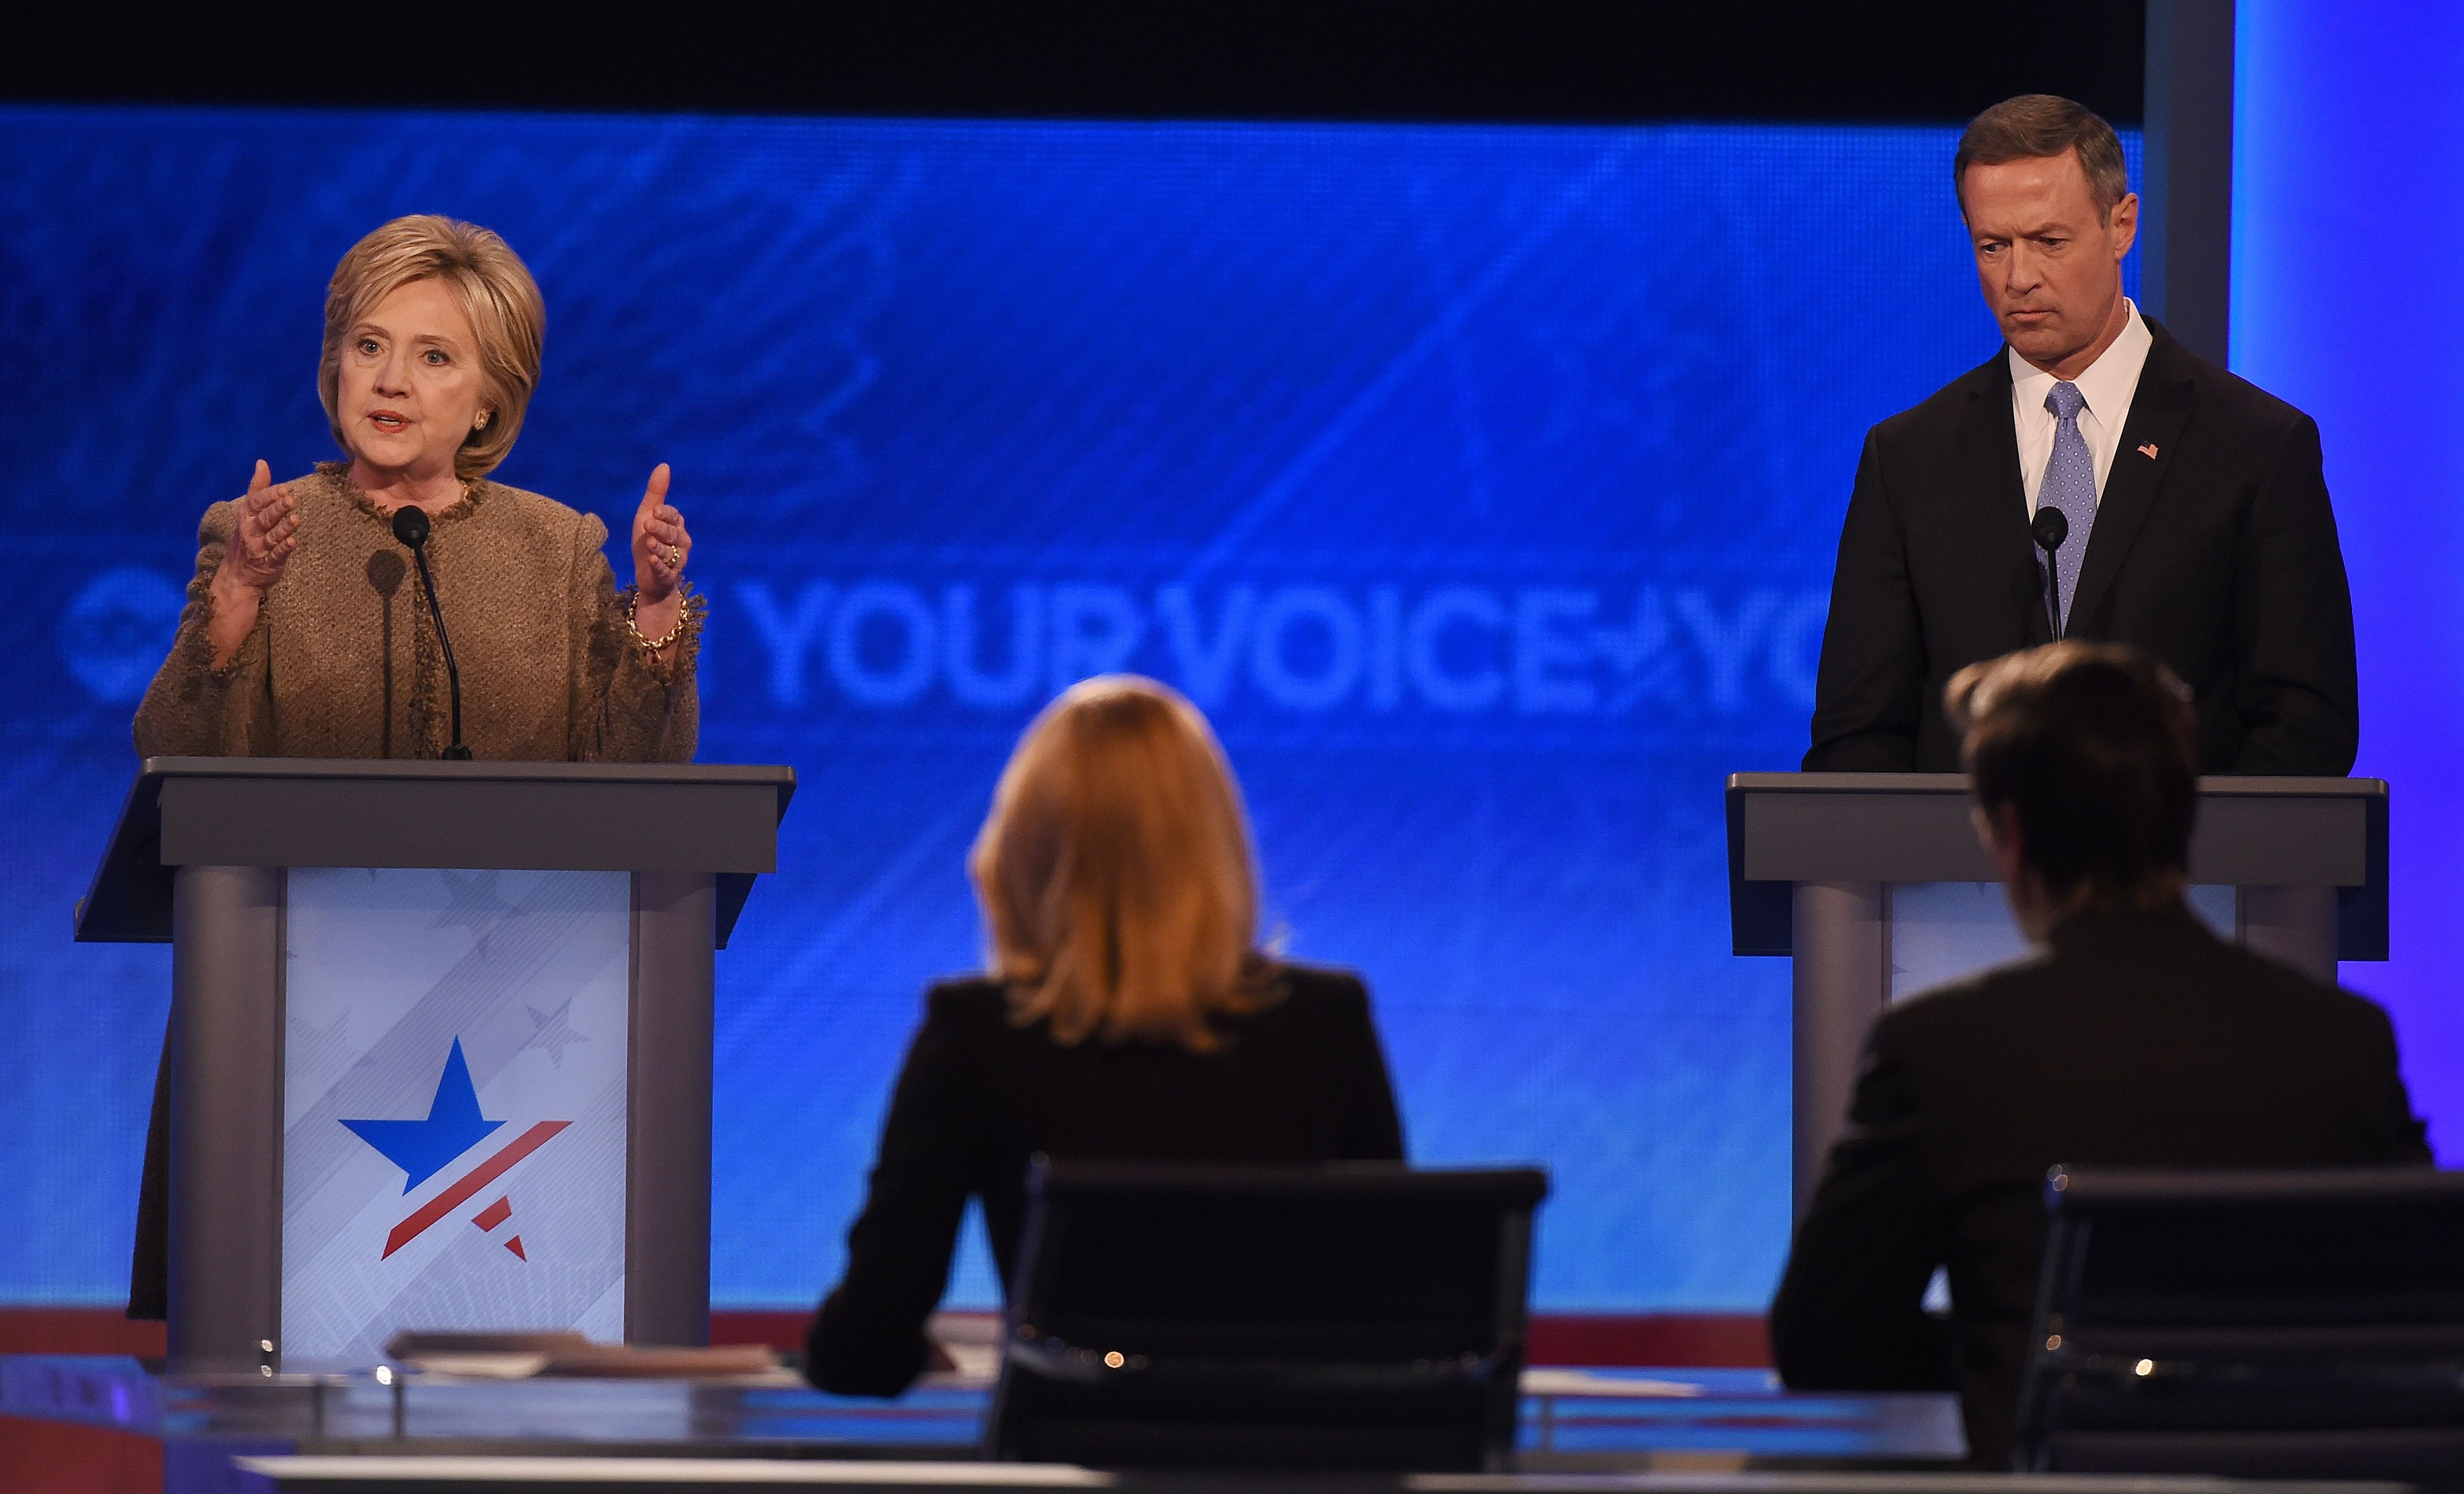 Hillary Clinton, left, speaks as fellow candidate Martin O'Malley listens during the Democratic Presidential Debate hosted by ABC News at Saint Anselm College in Manchester, New Hampshire, on Dec. 19, 2015.